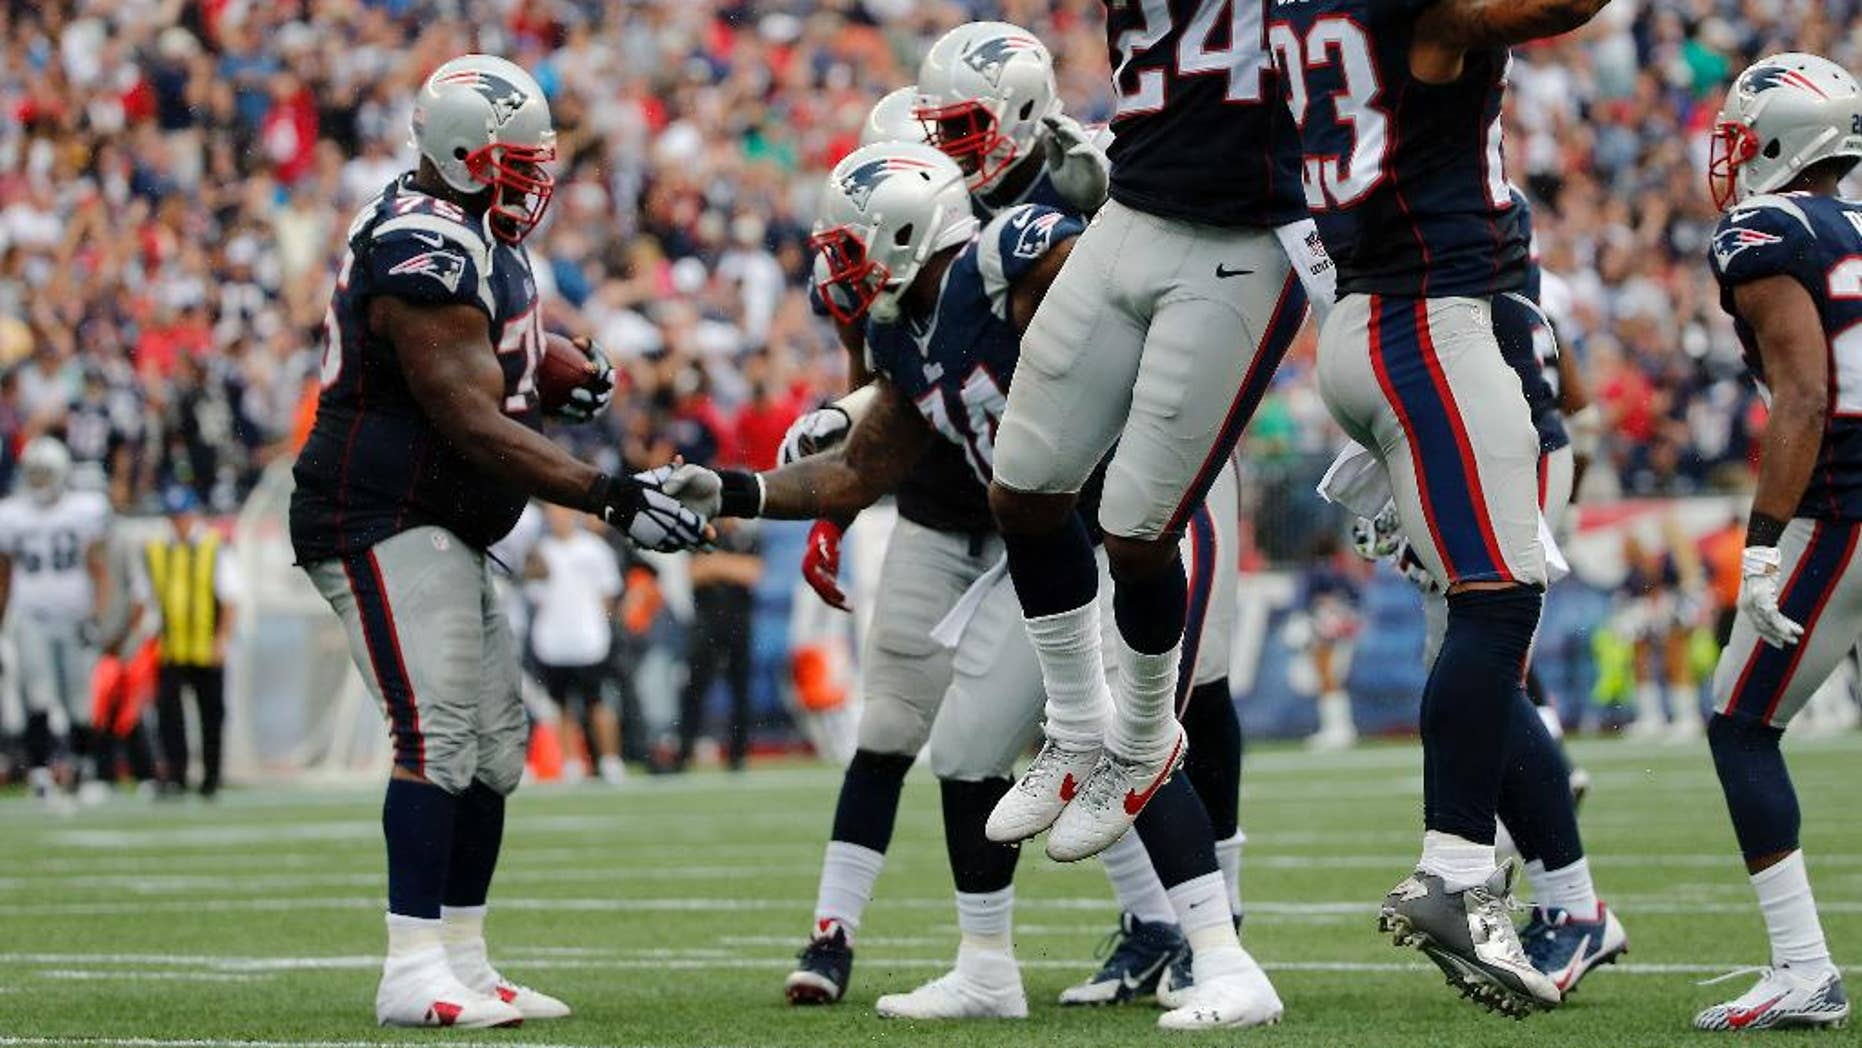 New England Patriots defensive backs Darrelle Revis (24) and Patrick Chung (23) celebrate an interception by Vince Wilfork, left, in the fourth quarter of an NFL football game against the Oakland Raiders, Sunday, Sept. 21, 2014, in Foxborough, Mass. The Patriots won 16-9. (AP Photo/Elise Amendola)